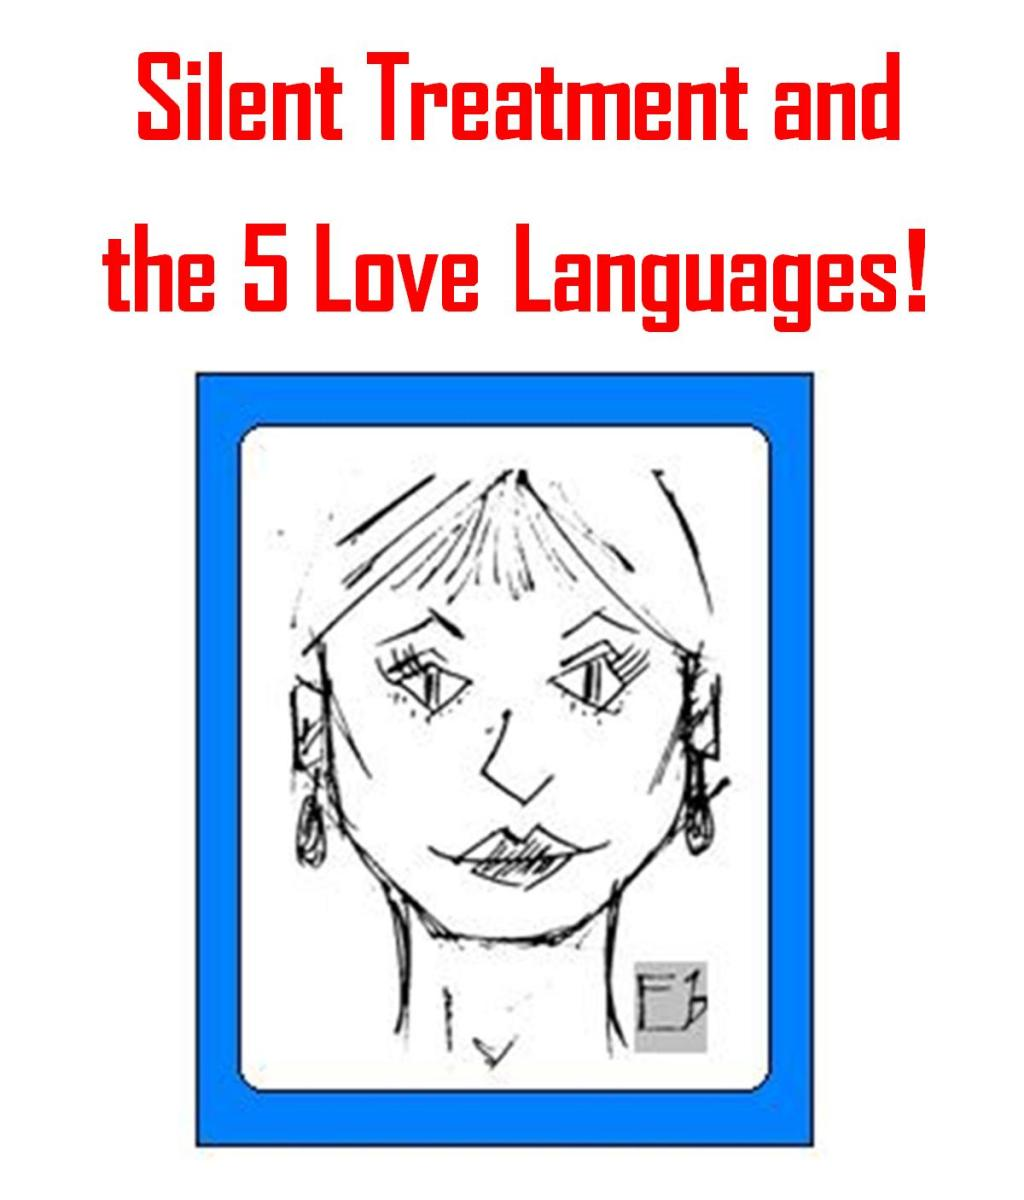 Silent Treatment Relationships and Speaking your Partner's Love Language